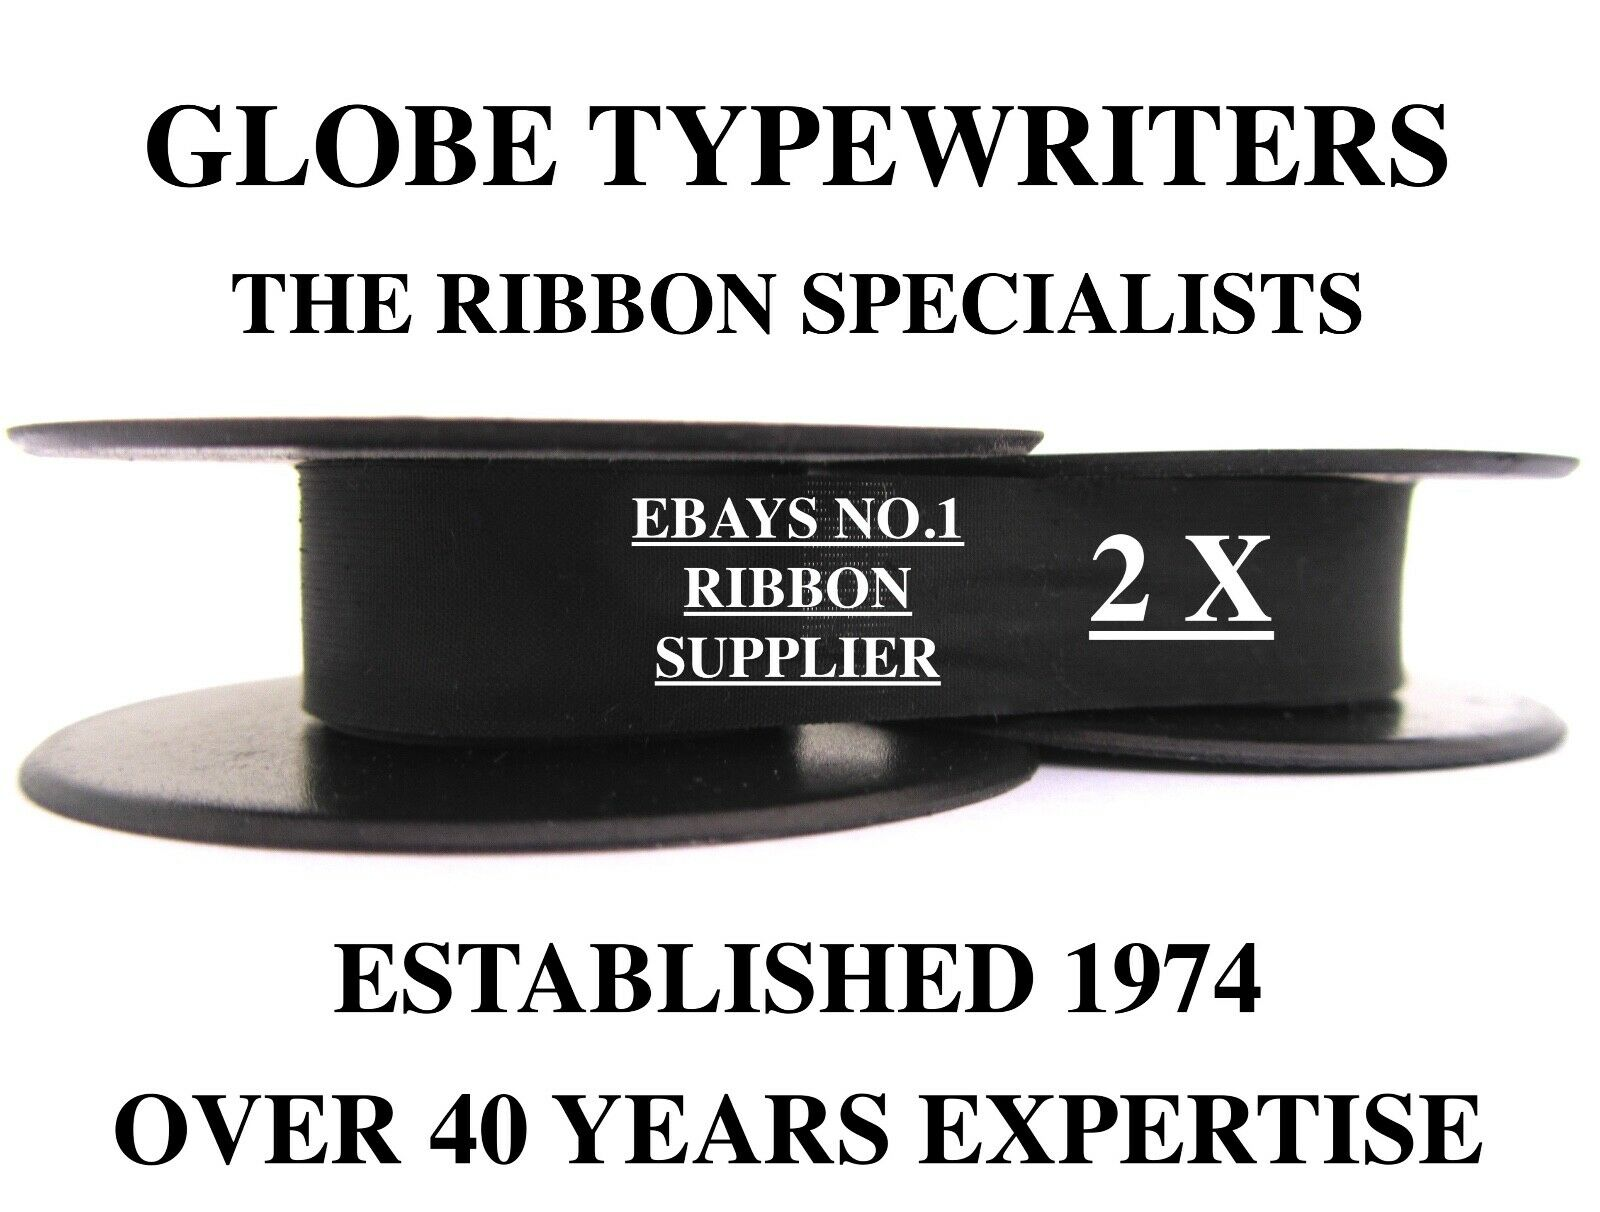 2 x 'IMPERIAL 2002' *BLACK* TOP QUALITY *10M* TYPEWRITER RIBBONS *SEALED* (G1)